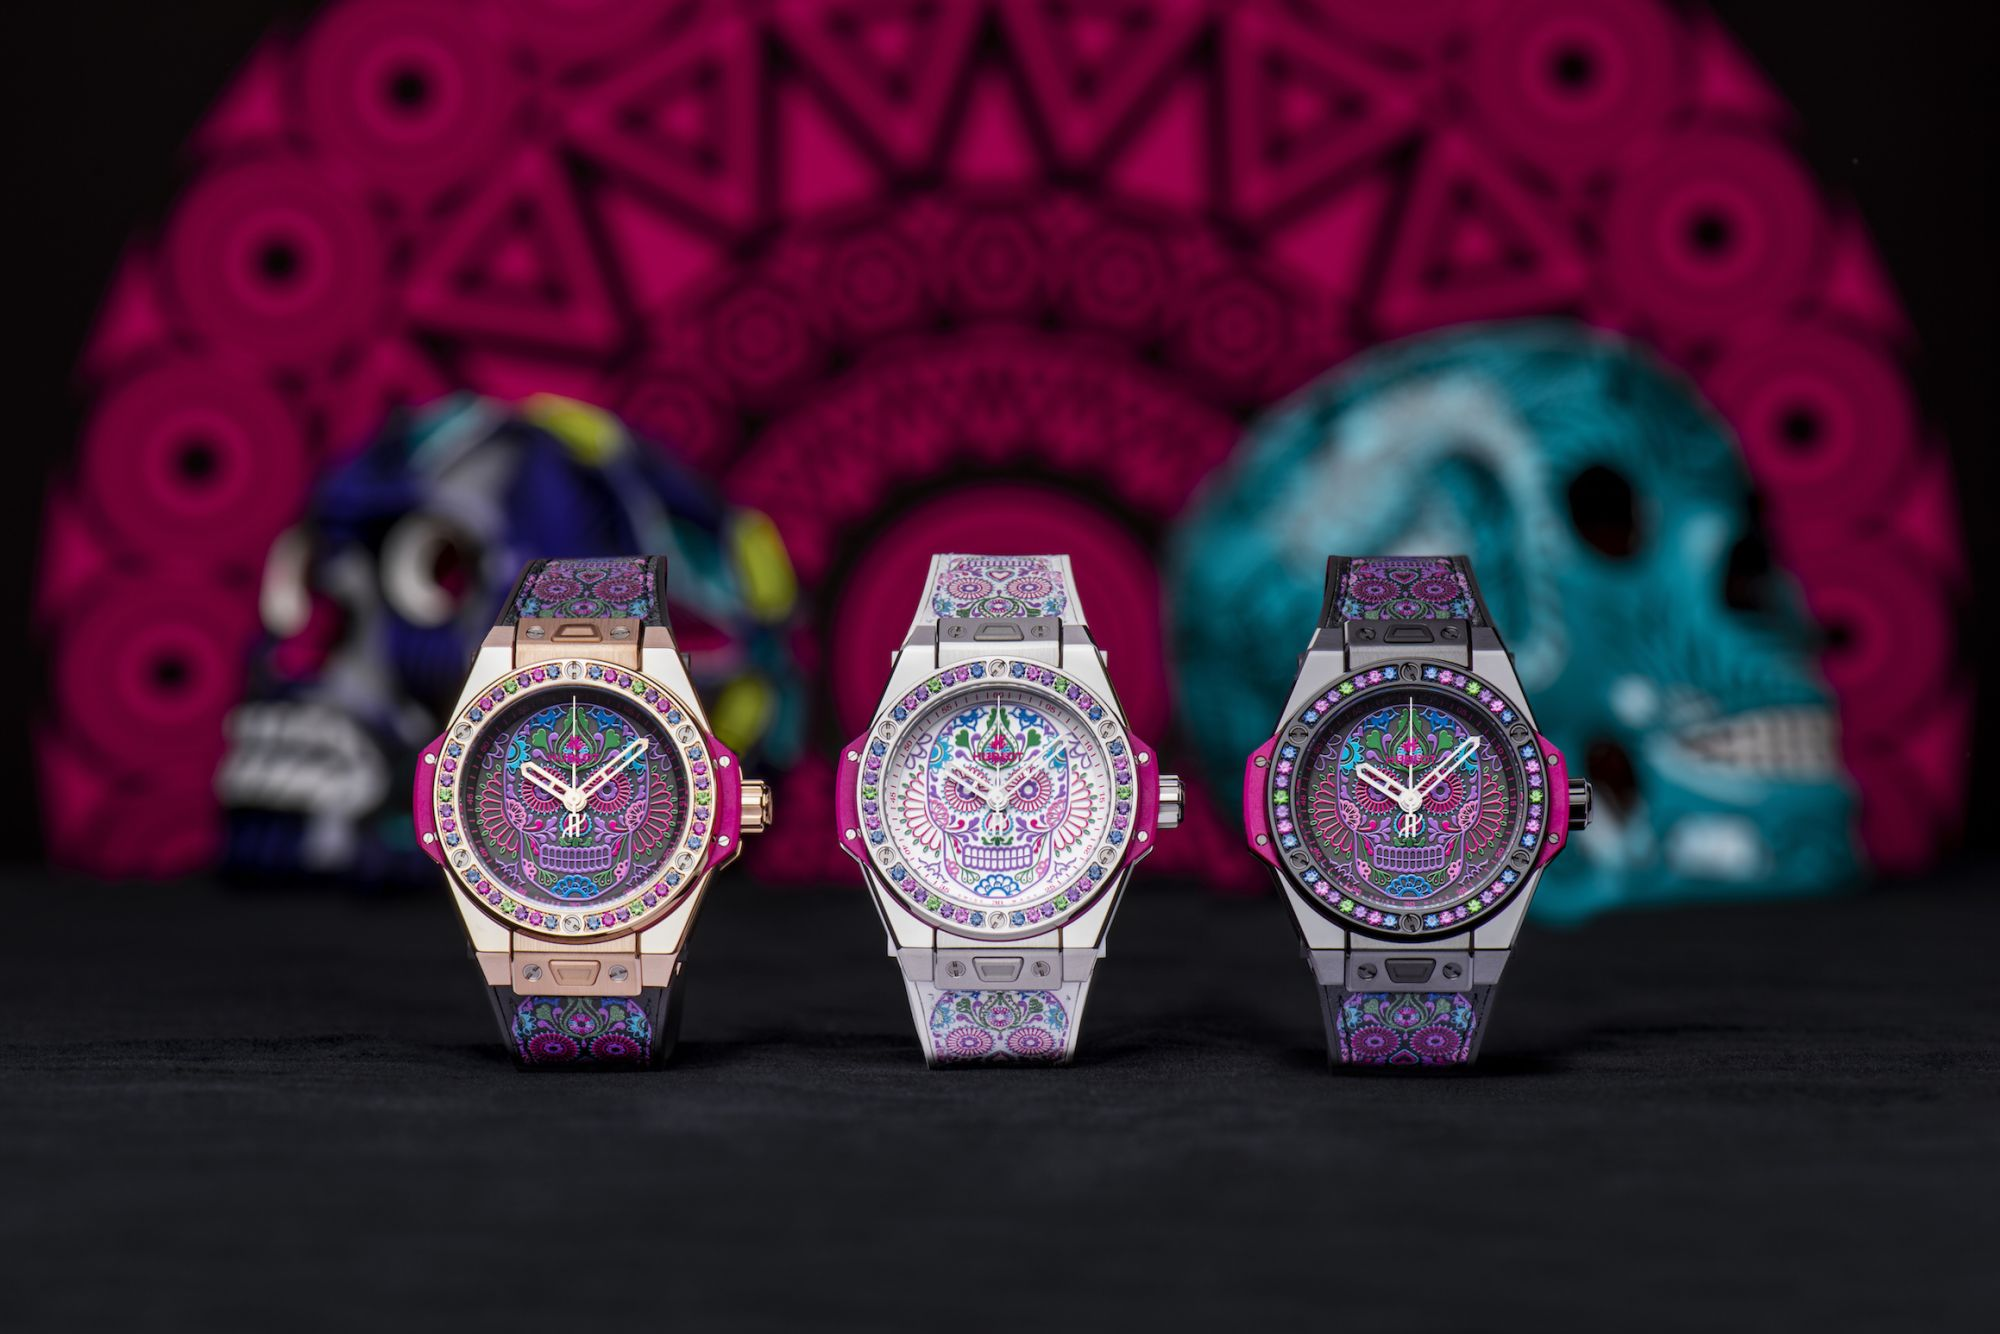 Big Bang One Click Calavera Catrina watches by Hublot (Photo: Courtesy of Hublot)